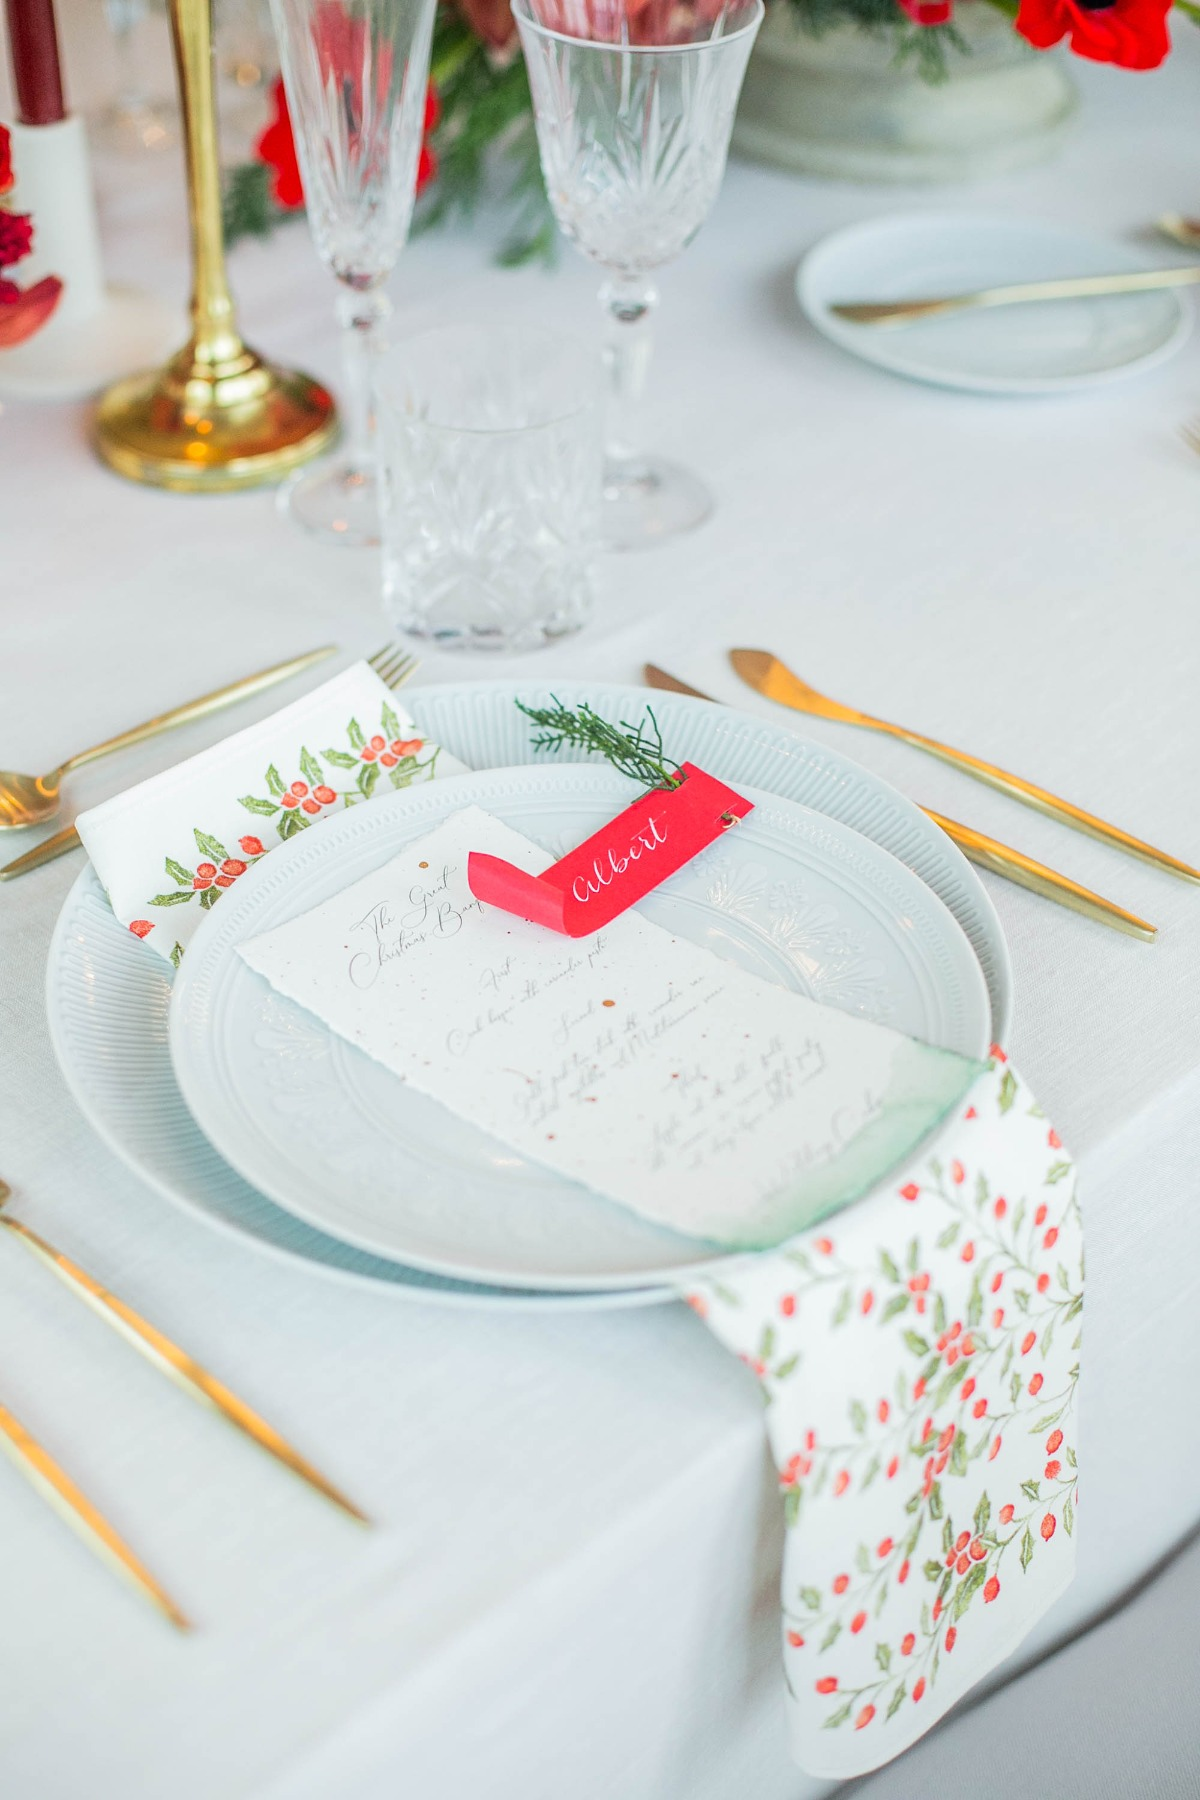 A Portugal Winter Wedding Inspiration Full Of Bright Bold Colors